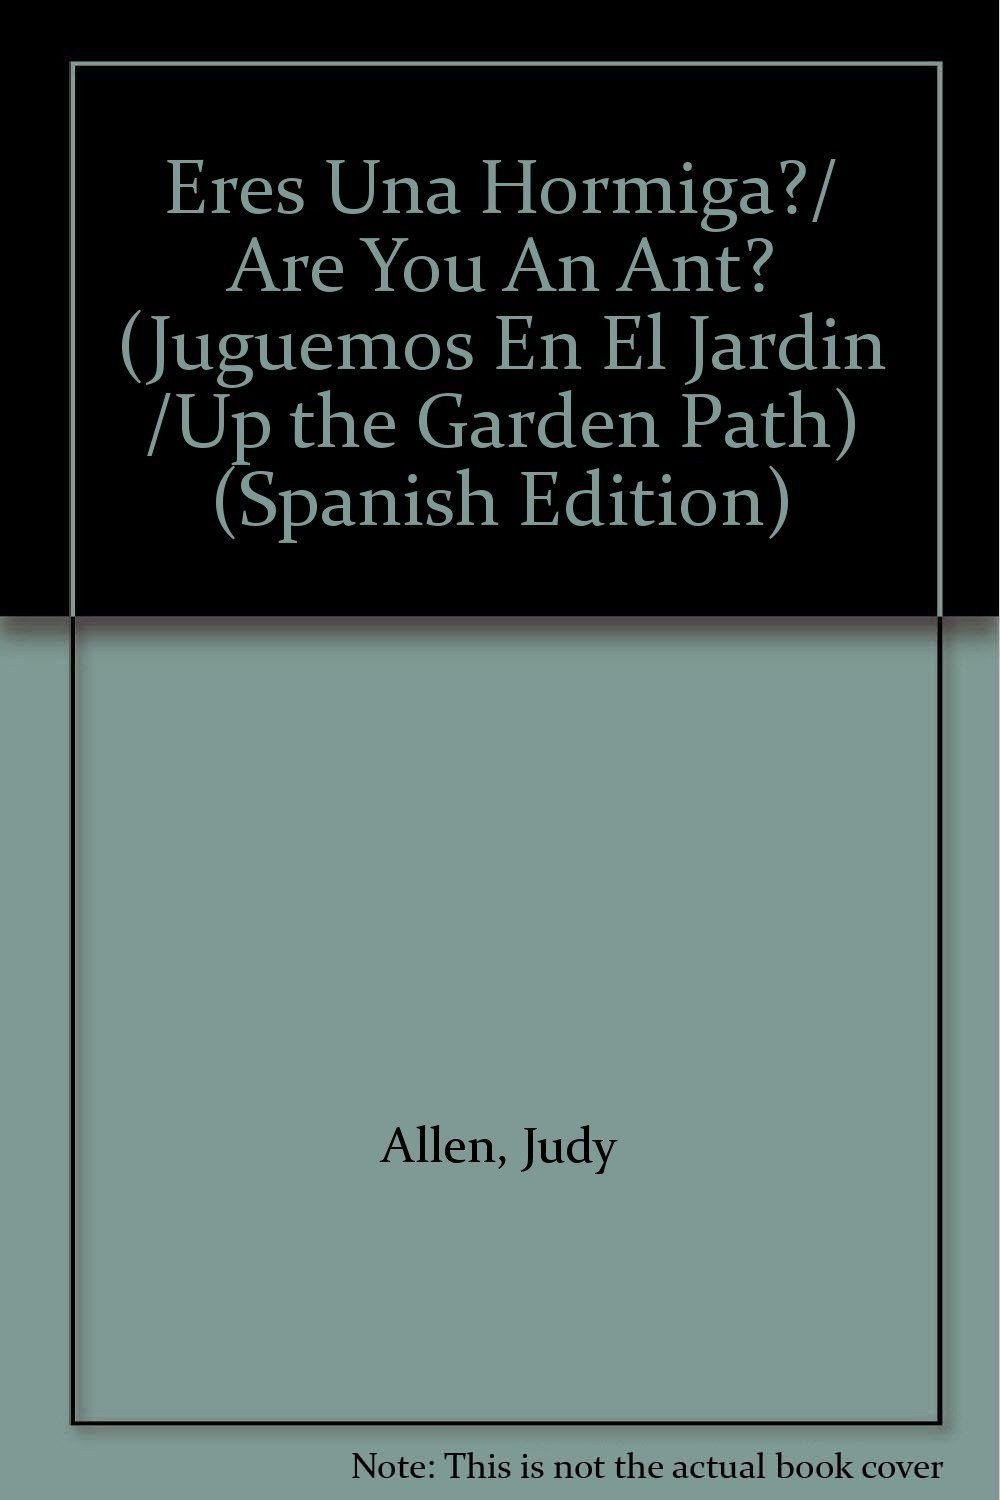 Read Online Eres Una Hormiga?/ Are You An Ant? (Juguemos En El Jardin /Up the Garden Path) (Spanish Edition) PDF